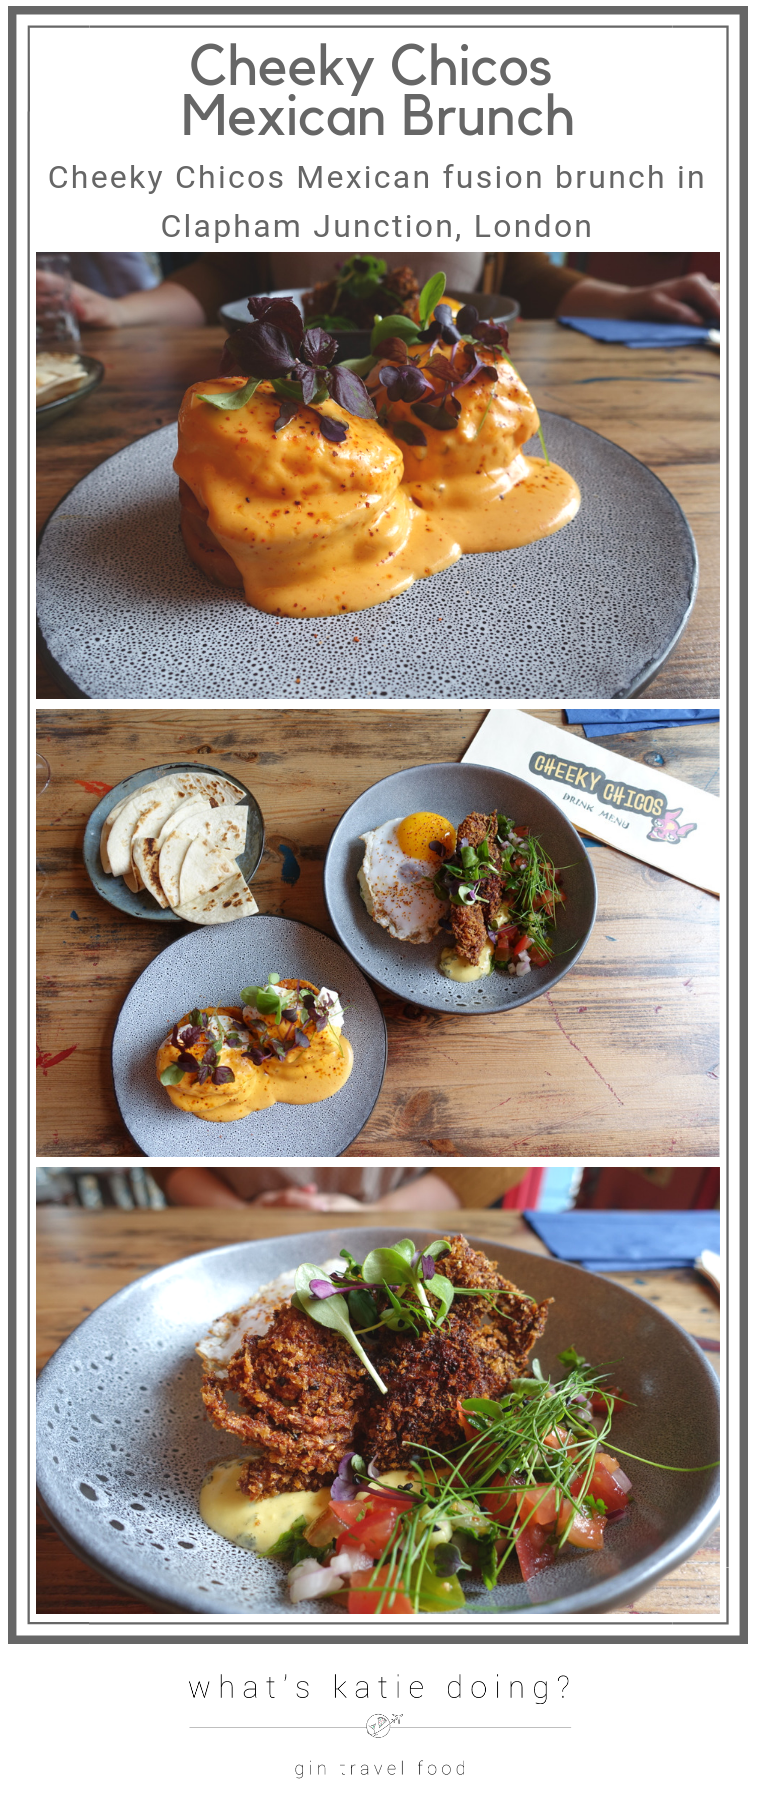 Cheeky Chicos Mexican brunch Clapham Junction London